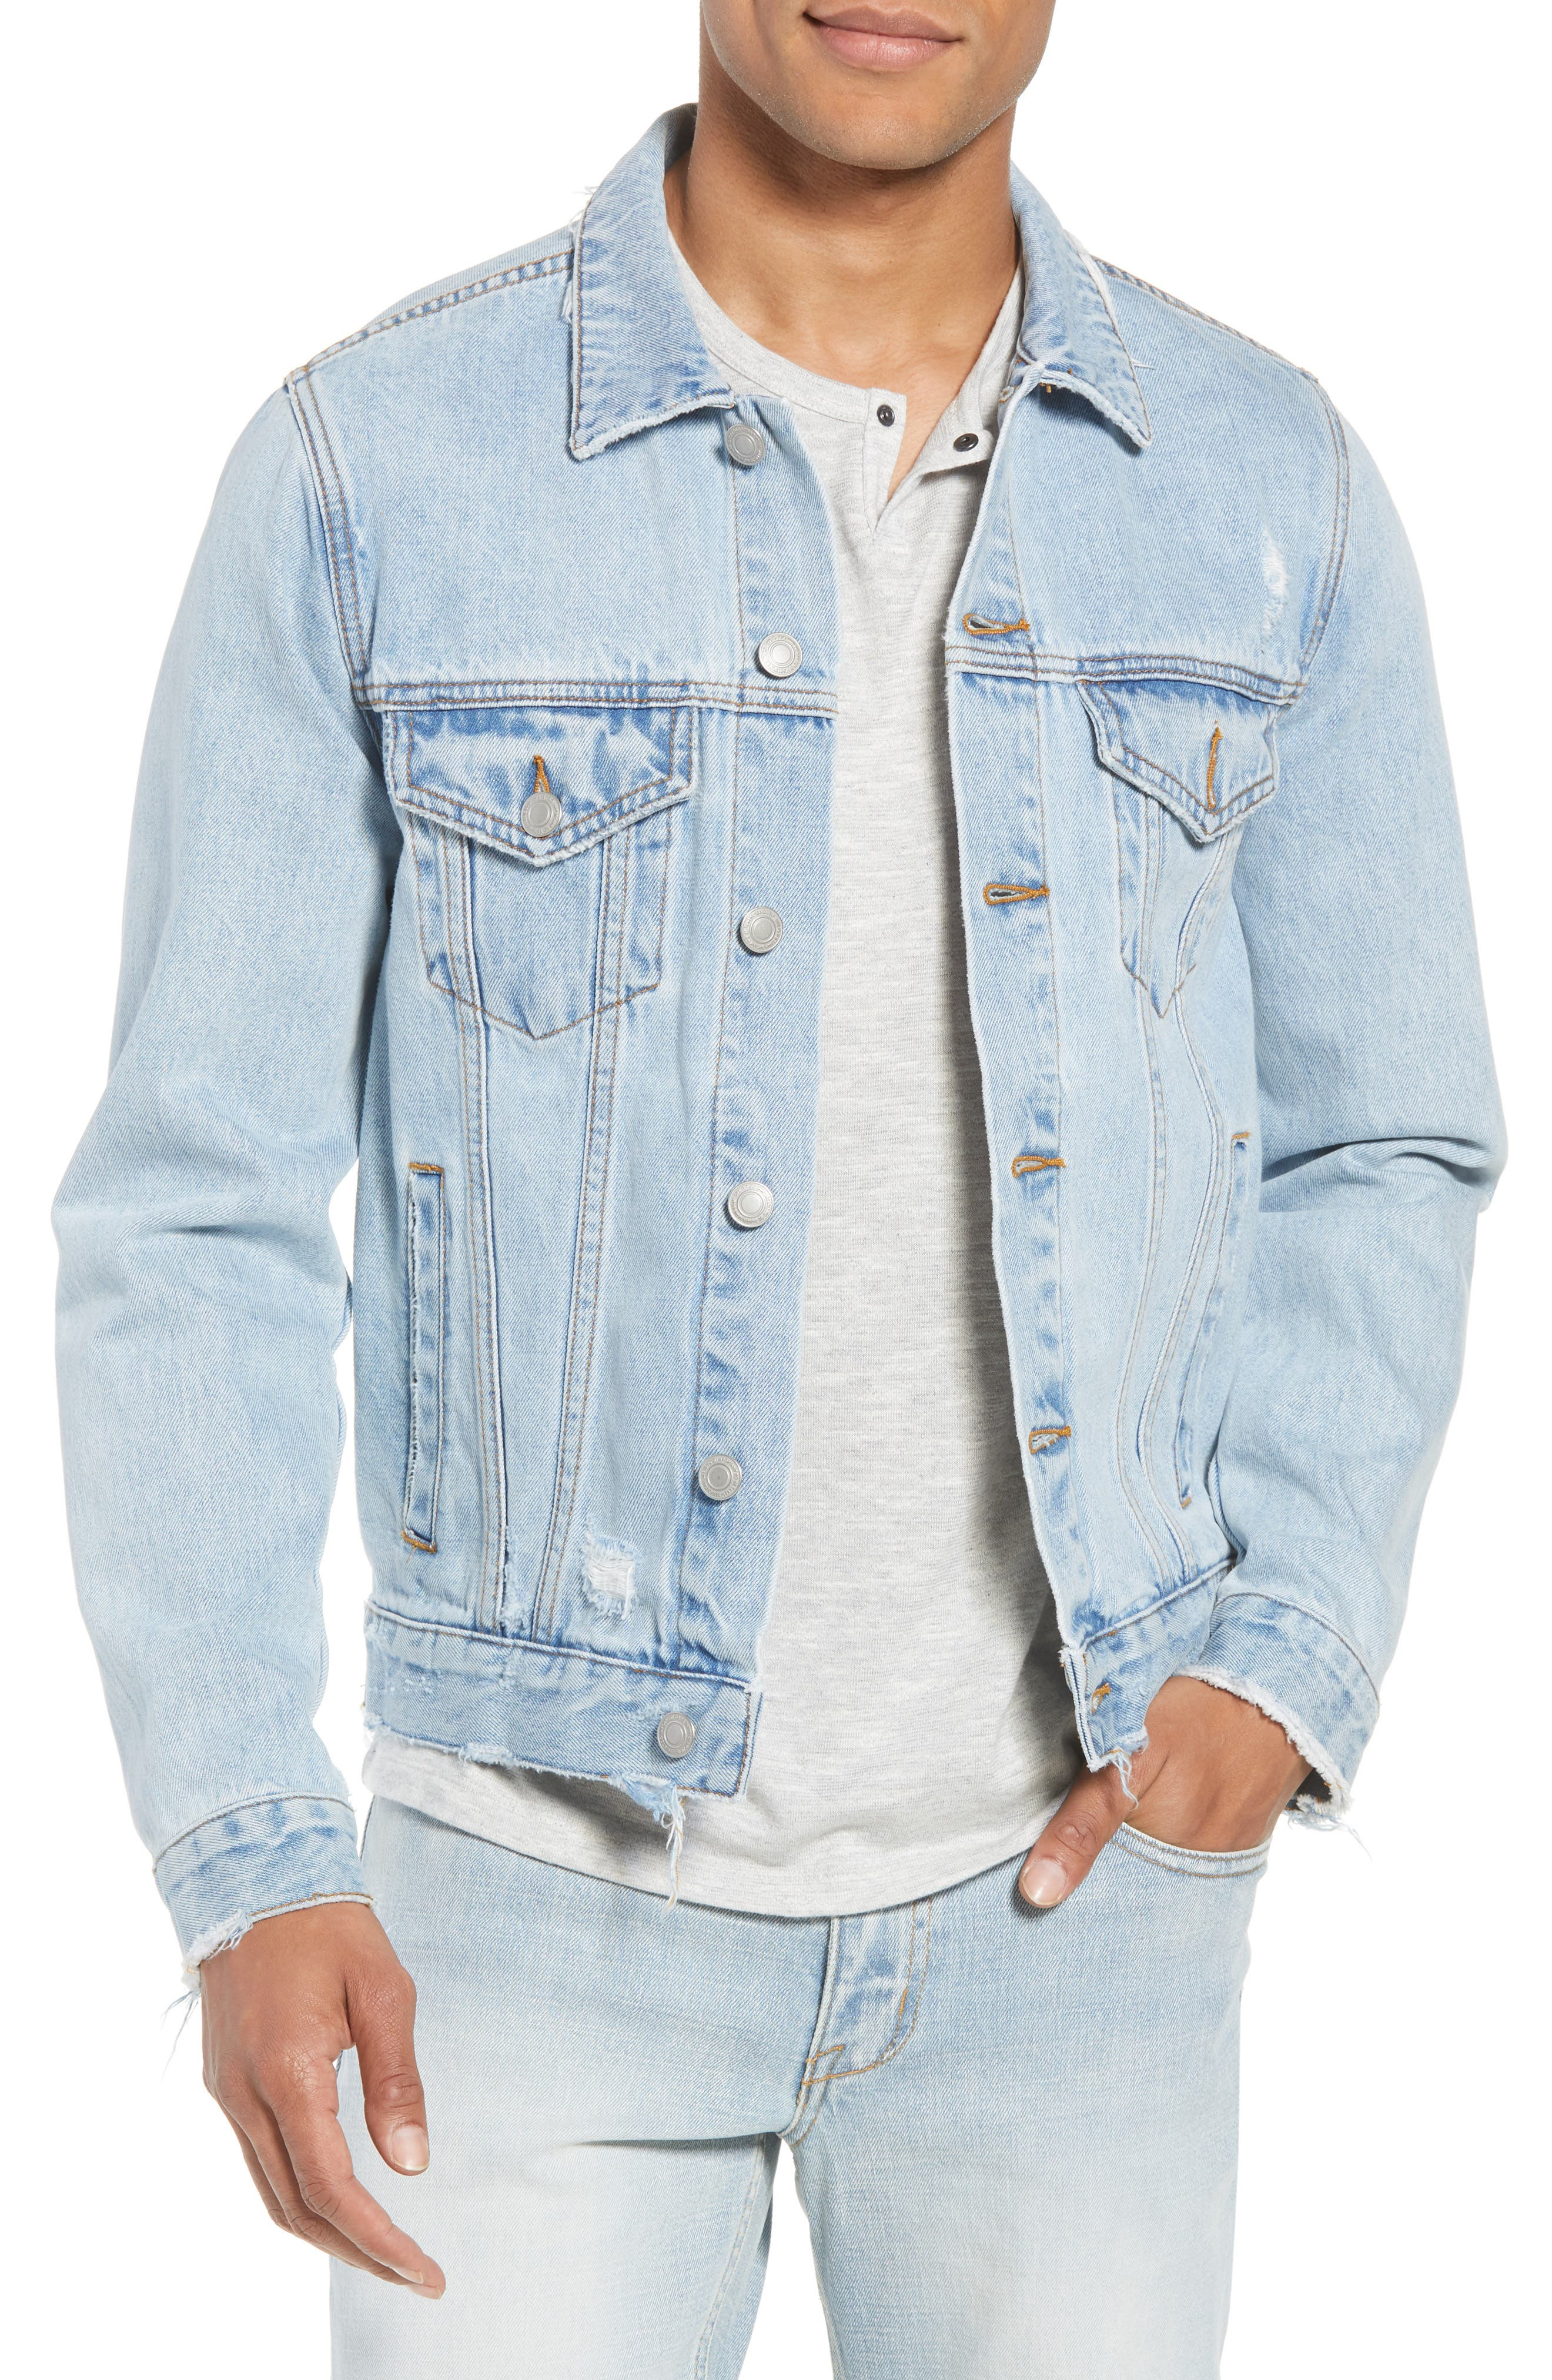 Type One Denim Jacket,                             Main thumbnail 1, color,                             Beaten Indigo